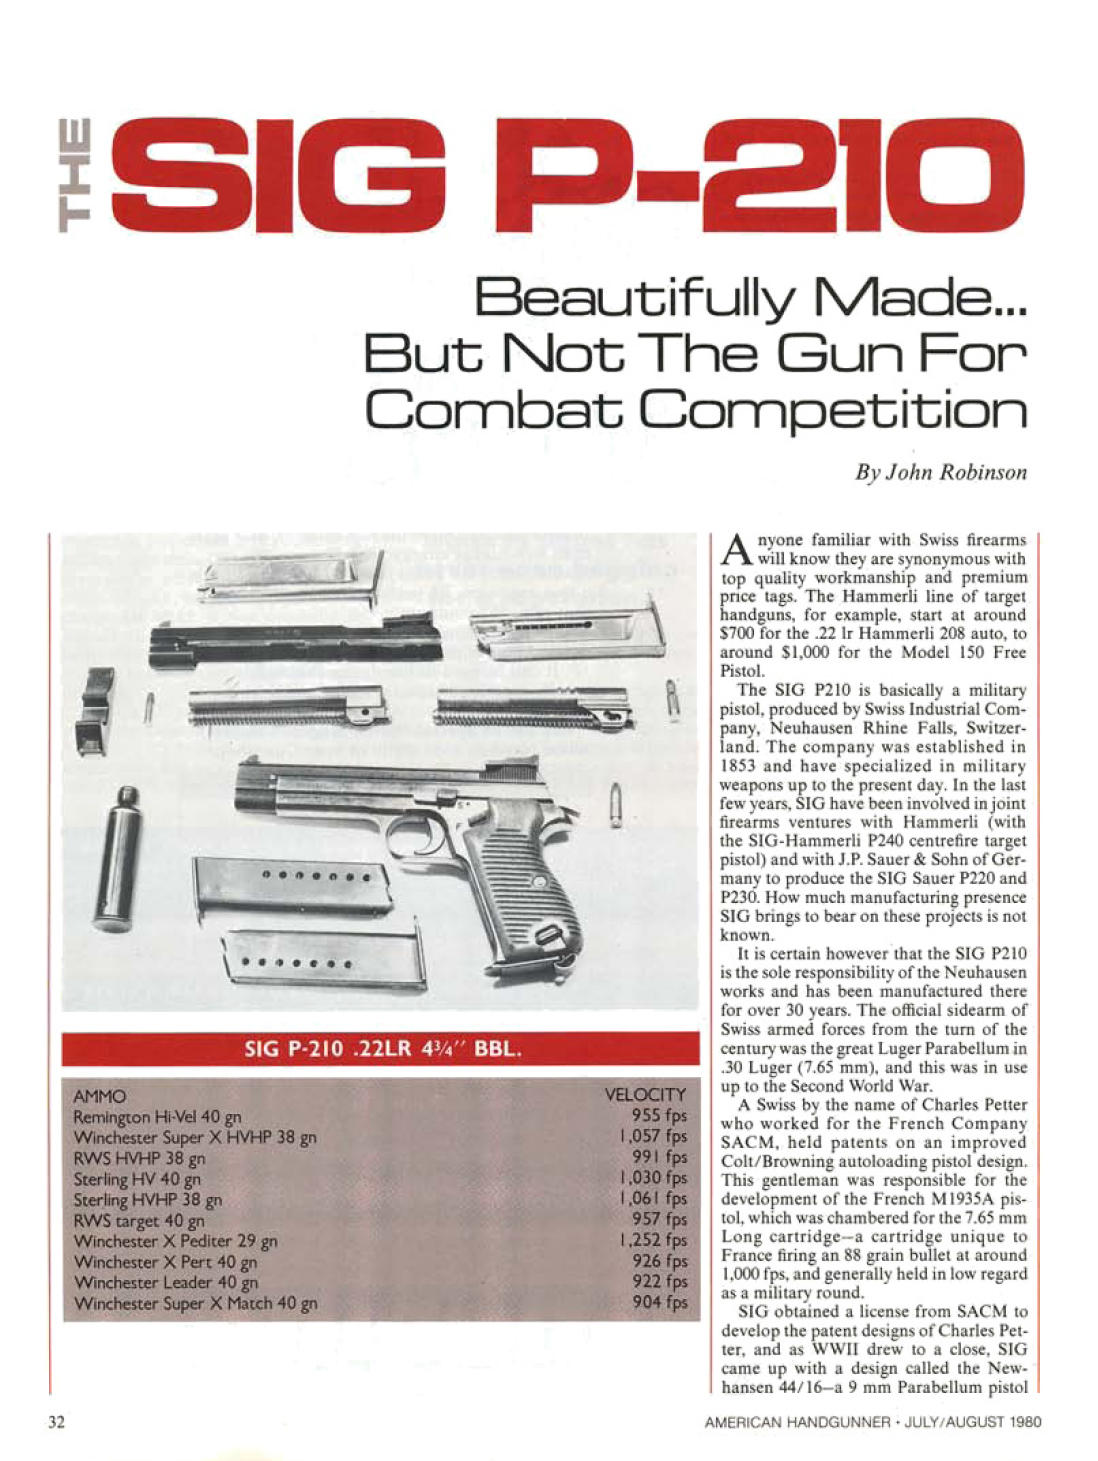 Sig P-210 -6 model review 7 pages article from 1980 and 1